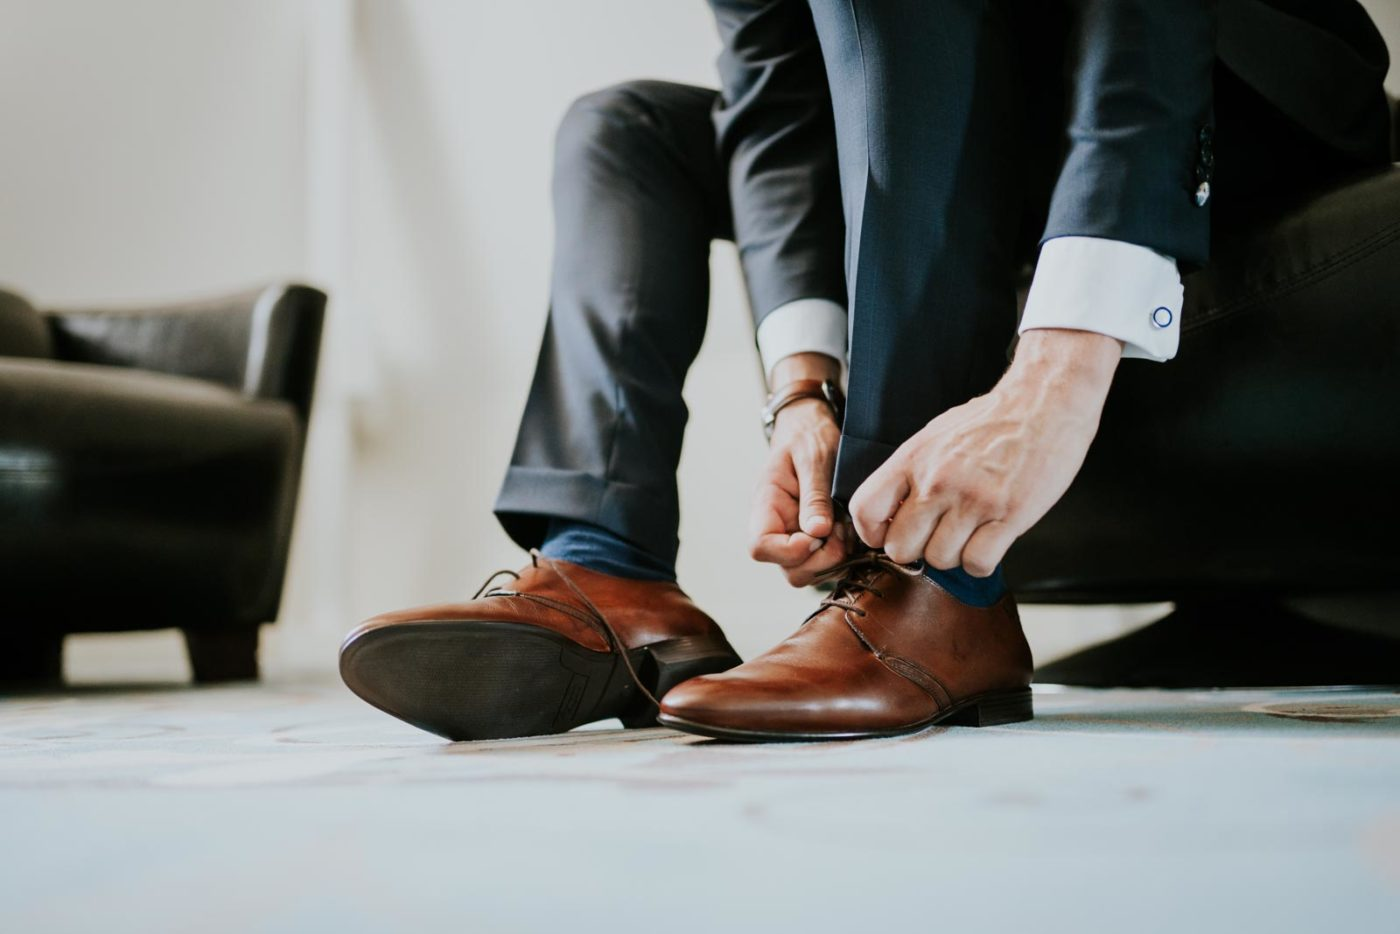 Les chaussures - reportage photo mariage.